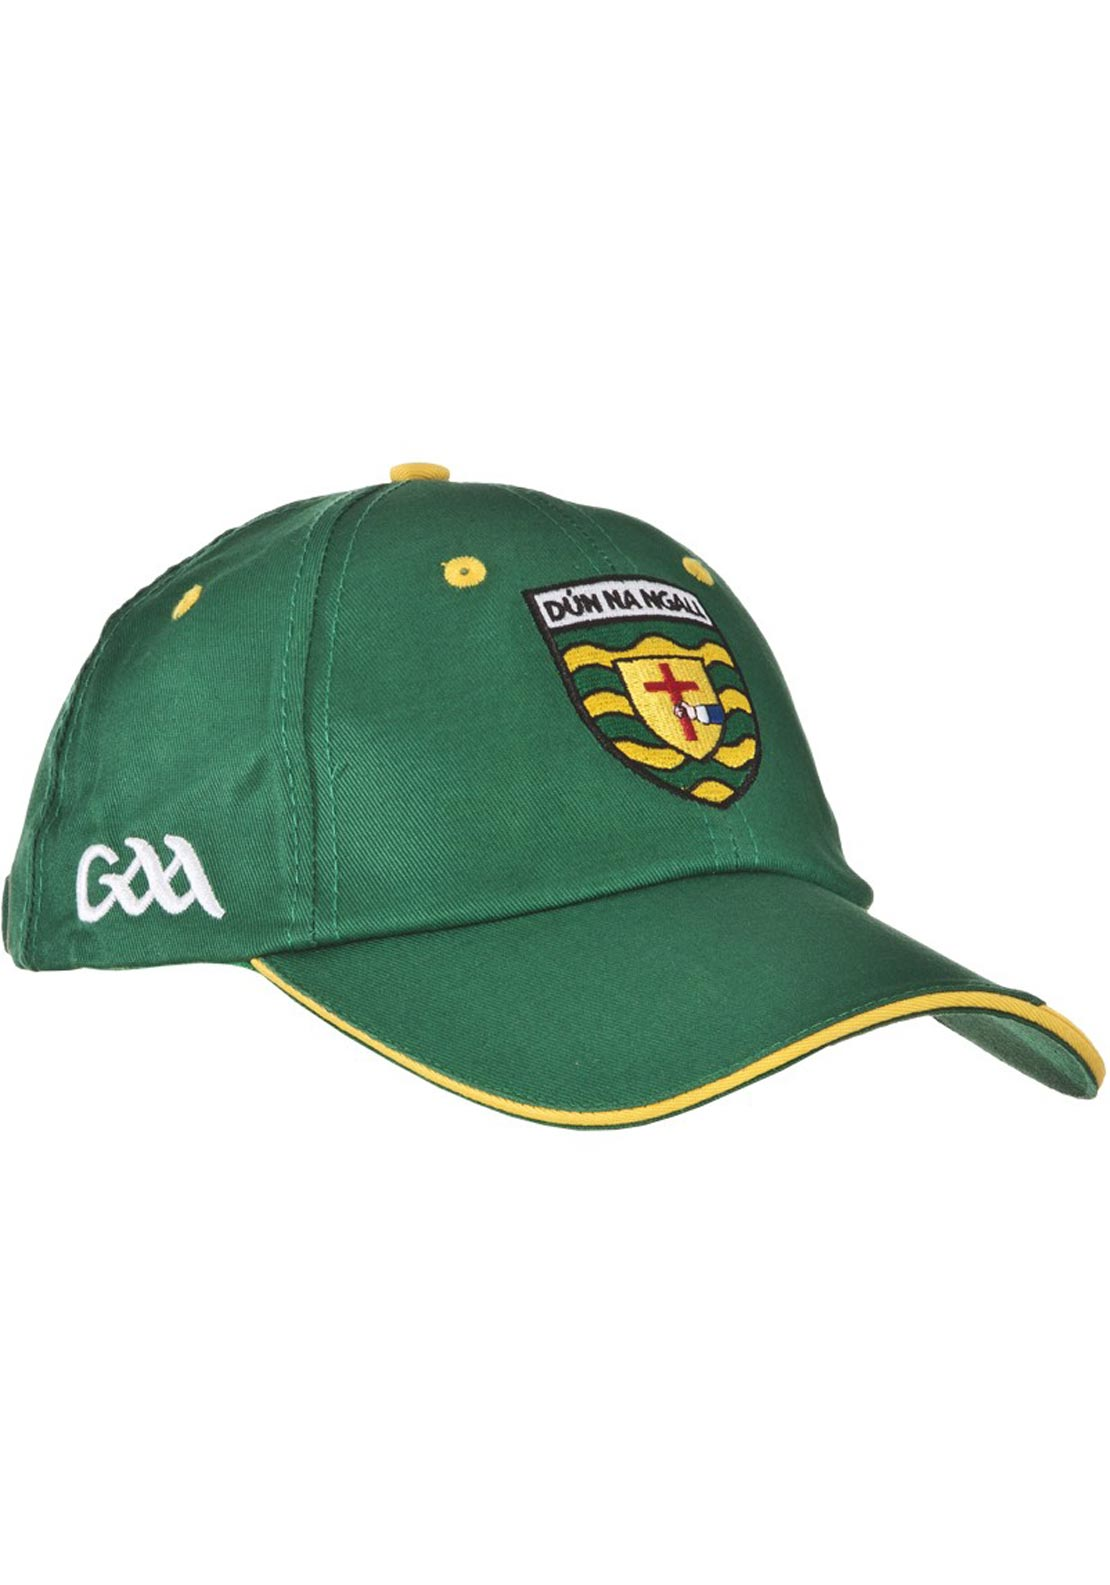 Introsports Ltd Donegal GAA Cap, Green